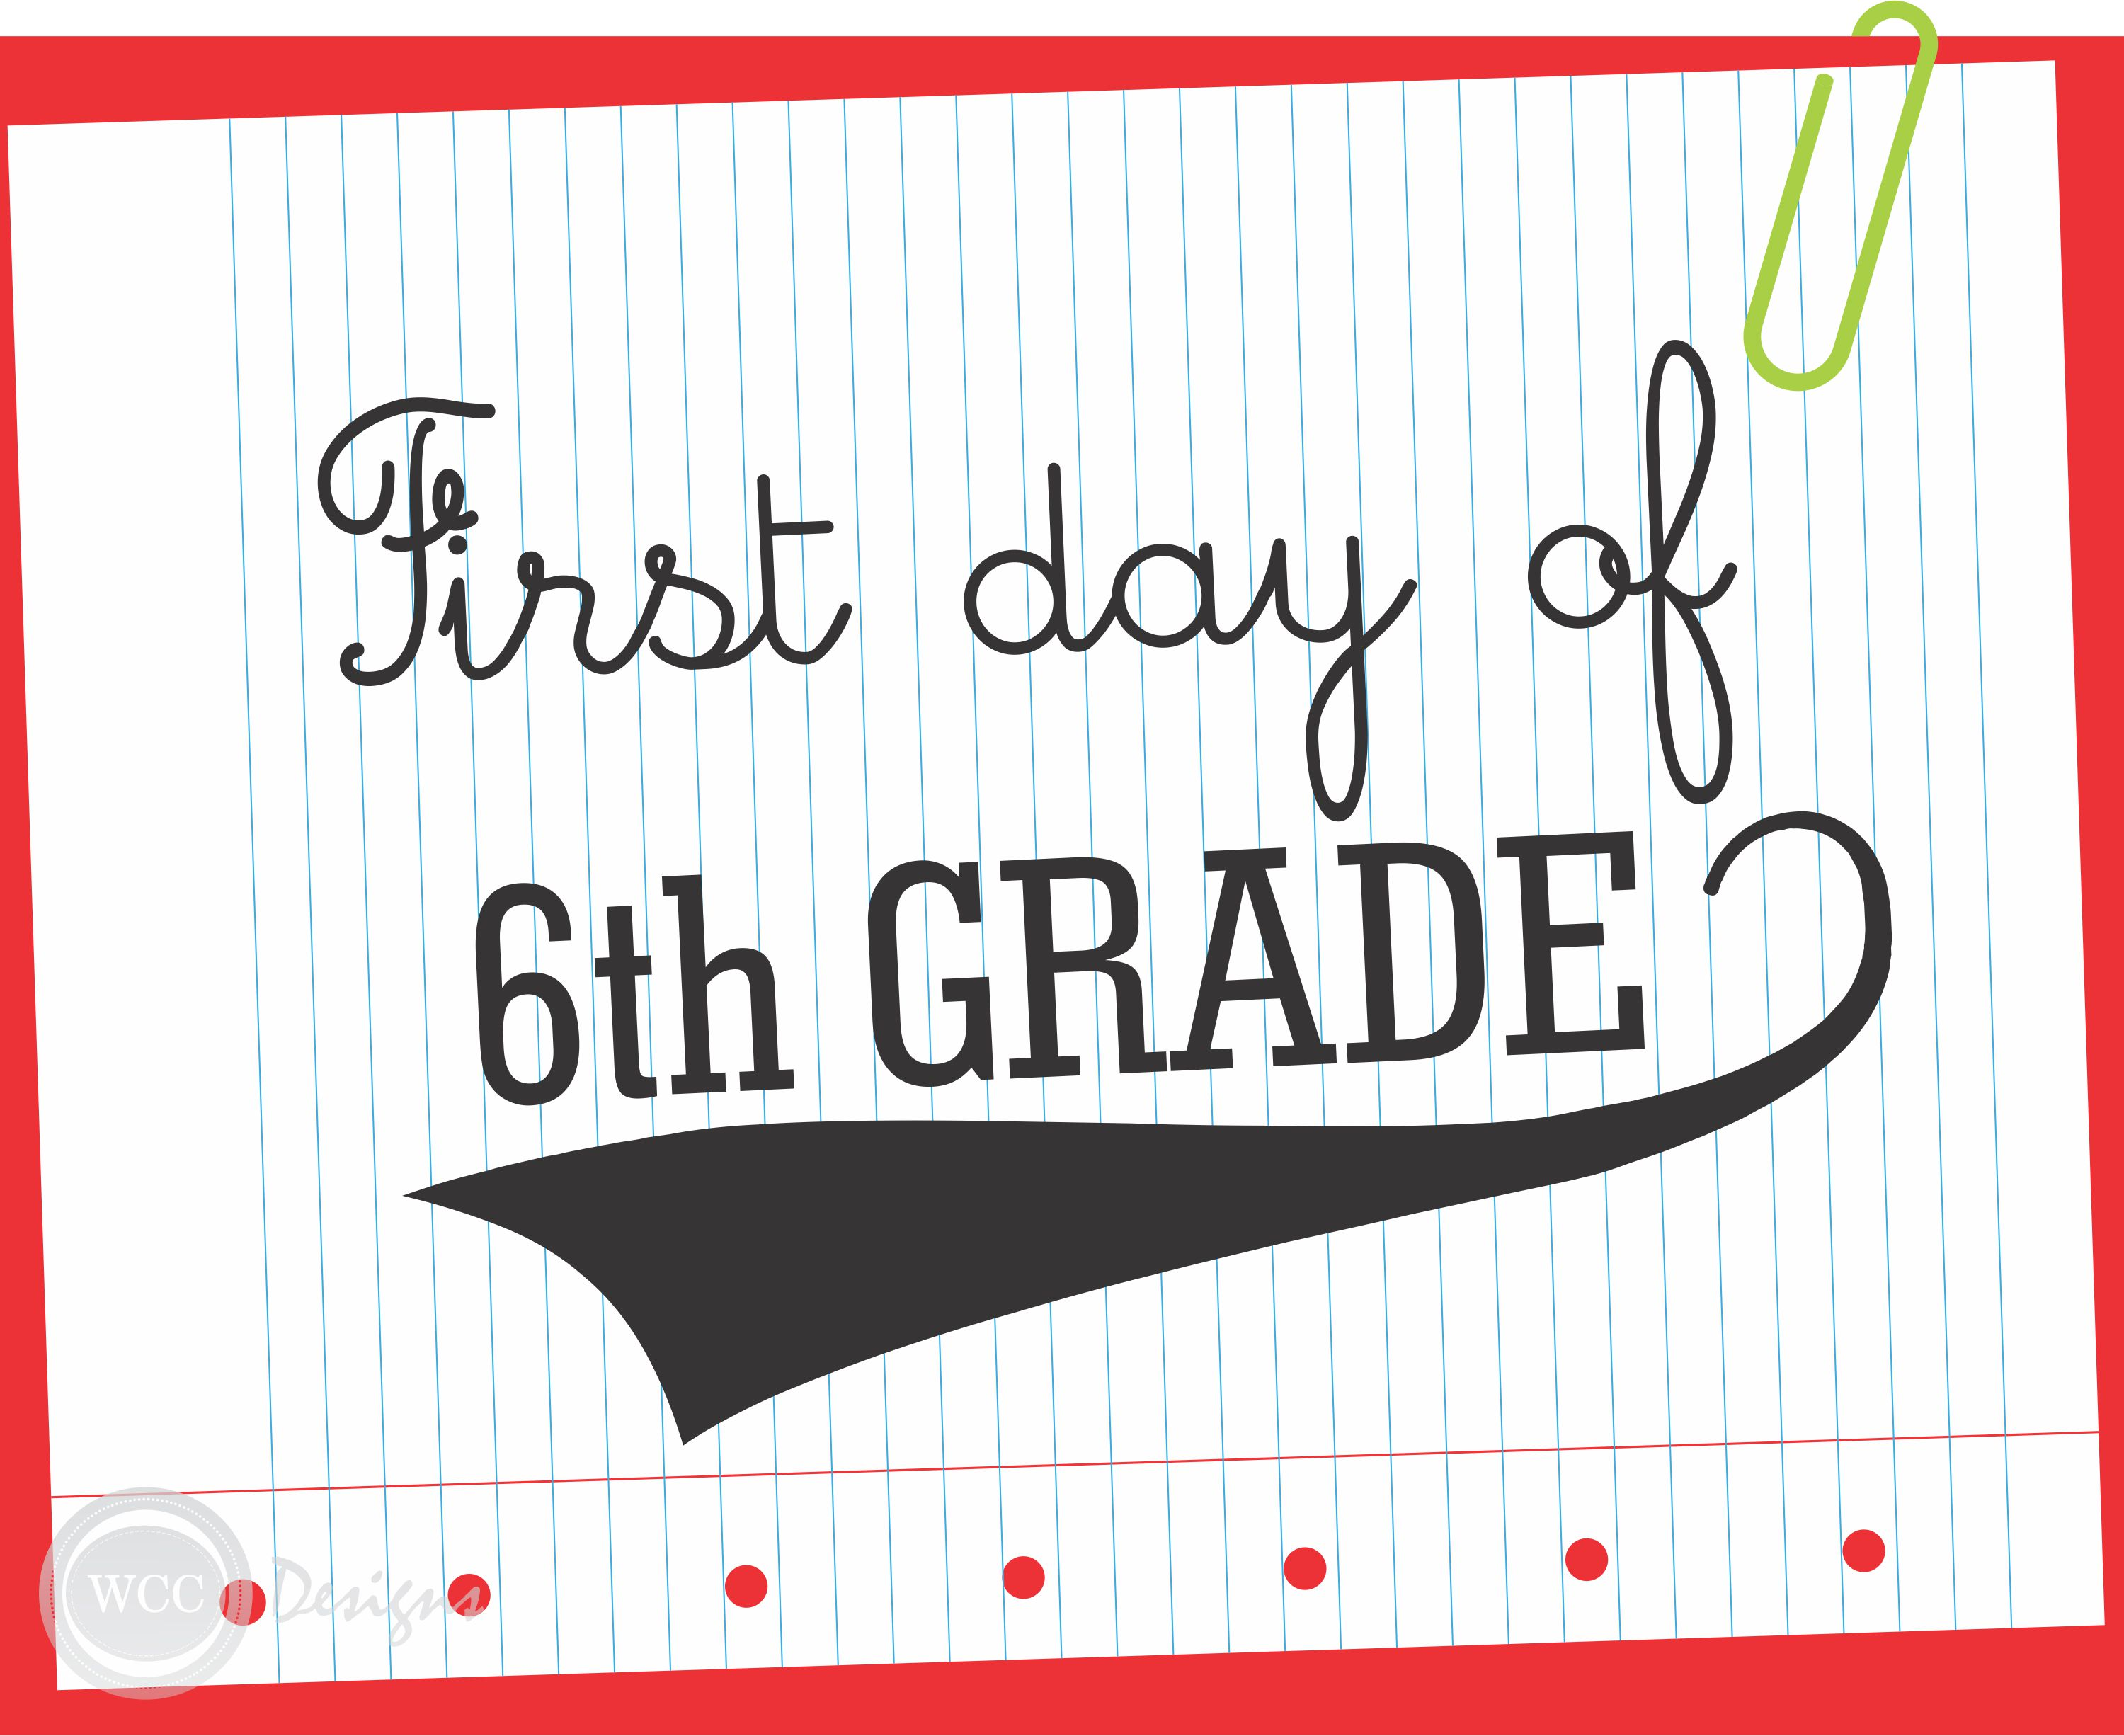 Free First Day Of School Printable Signs From Wcc Designs  Catch My Party